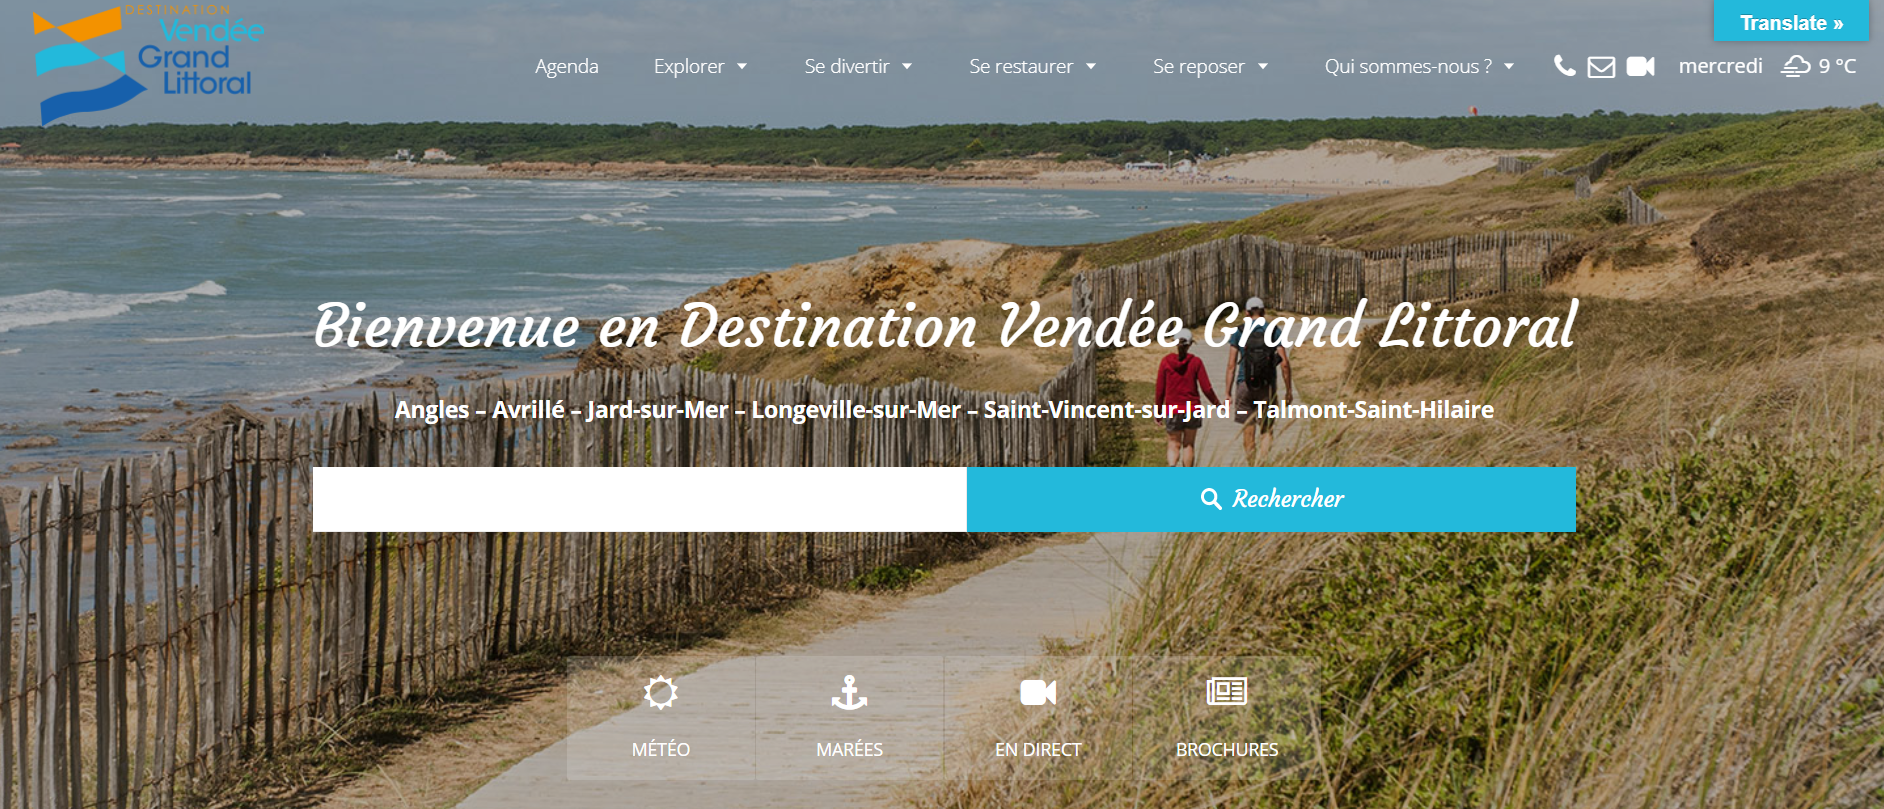 Office de tourisme destination vend e grand littoral - Les sables d olonne office du tourisme ...